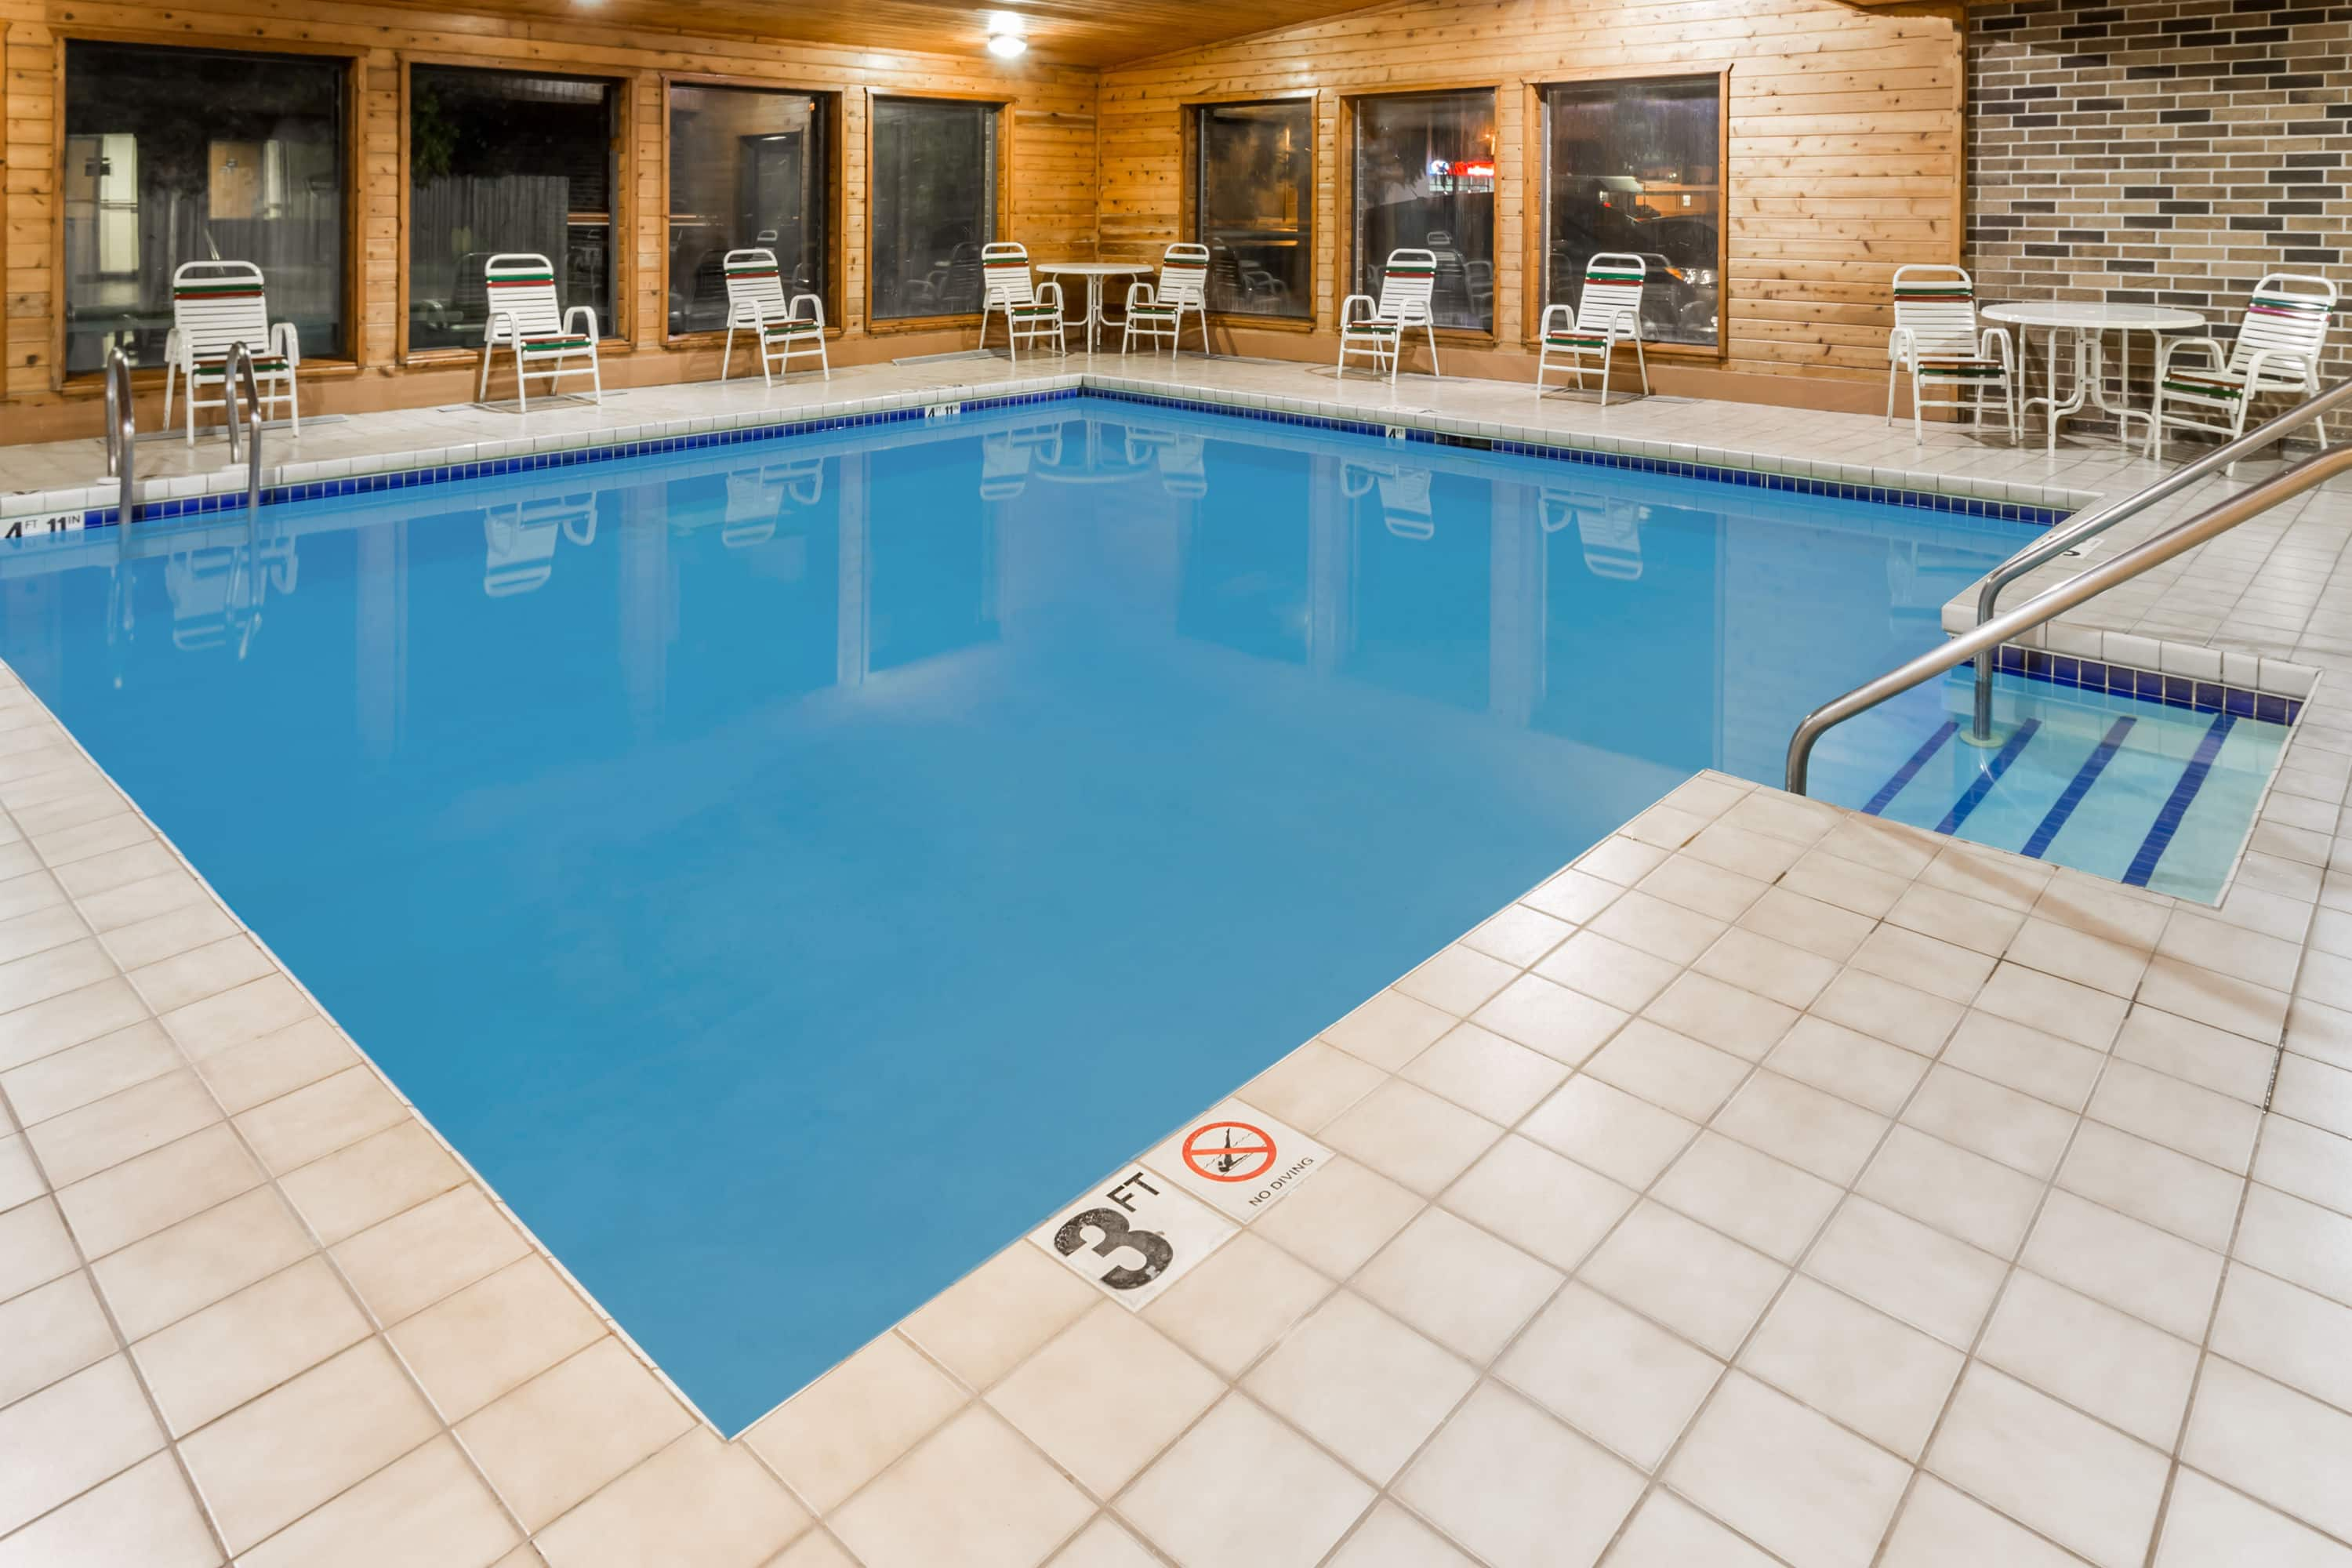 Excellent Pool At The Days Inn Stoughton Wi In Wisconsin With Hotels Near Ma